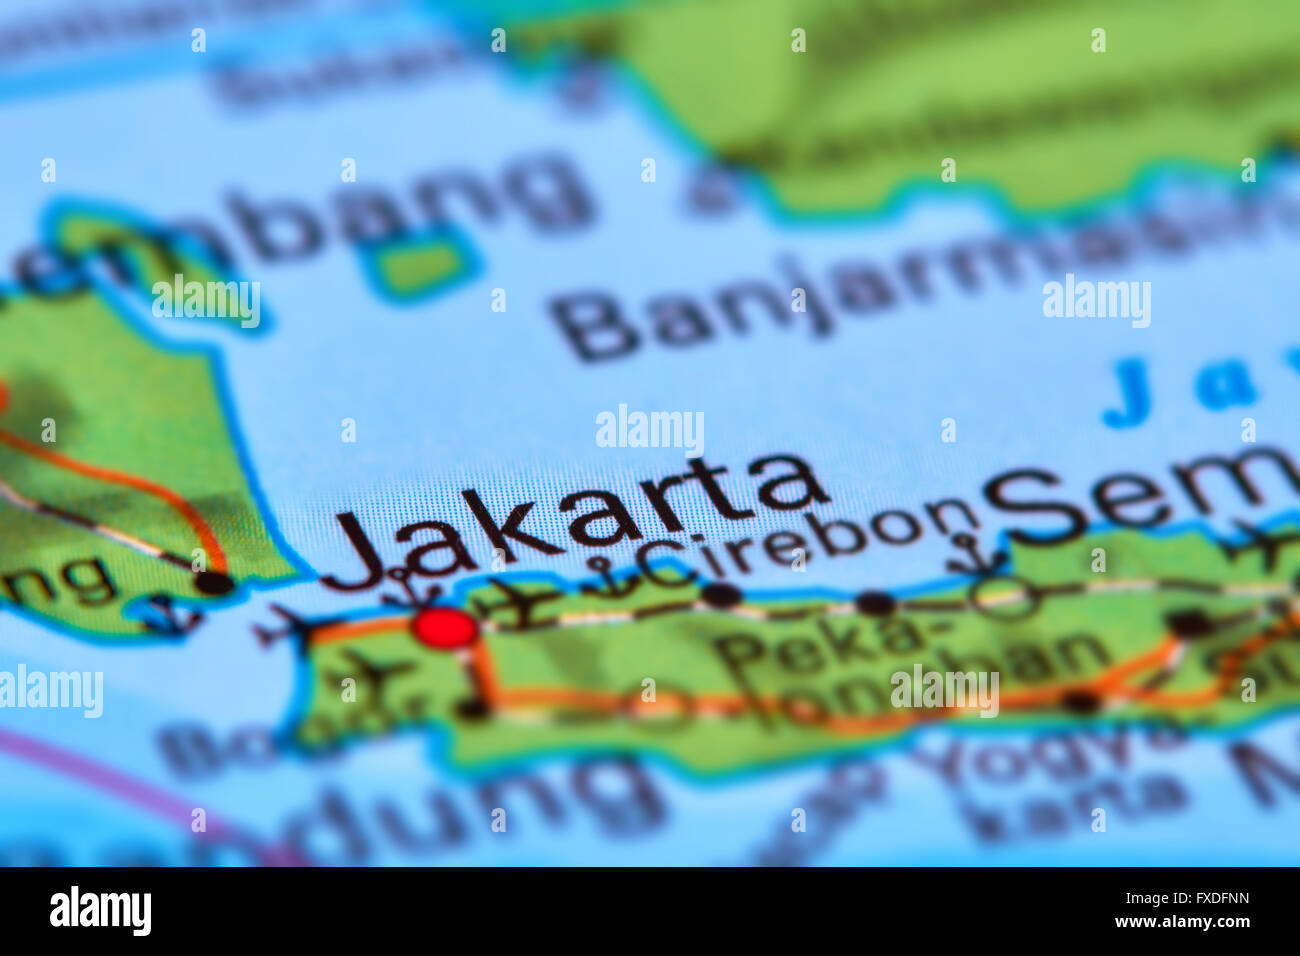 Jakarta capital city of indonesia on the world map stock photo jakarta capital city of indonesia on the world map gumiabroncs Image collections